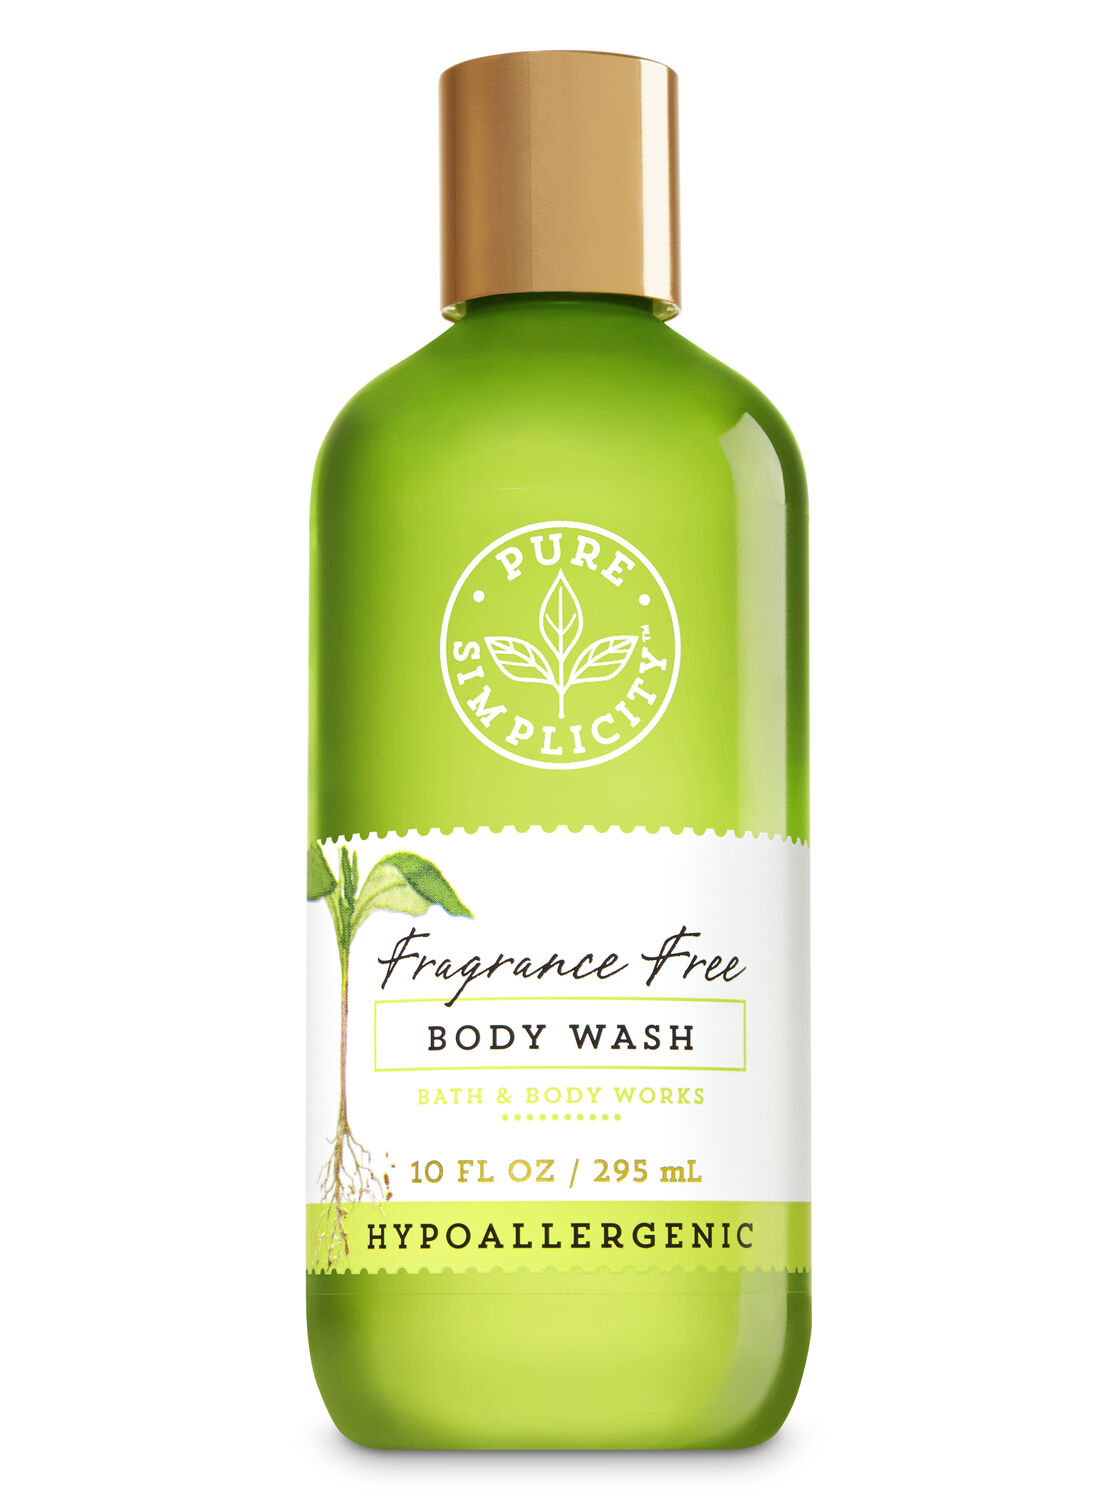 p skin this washes span and my dove become top class drugstore best crop favorite care smelling shower wash gel for luxury elle makeup has beauty body